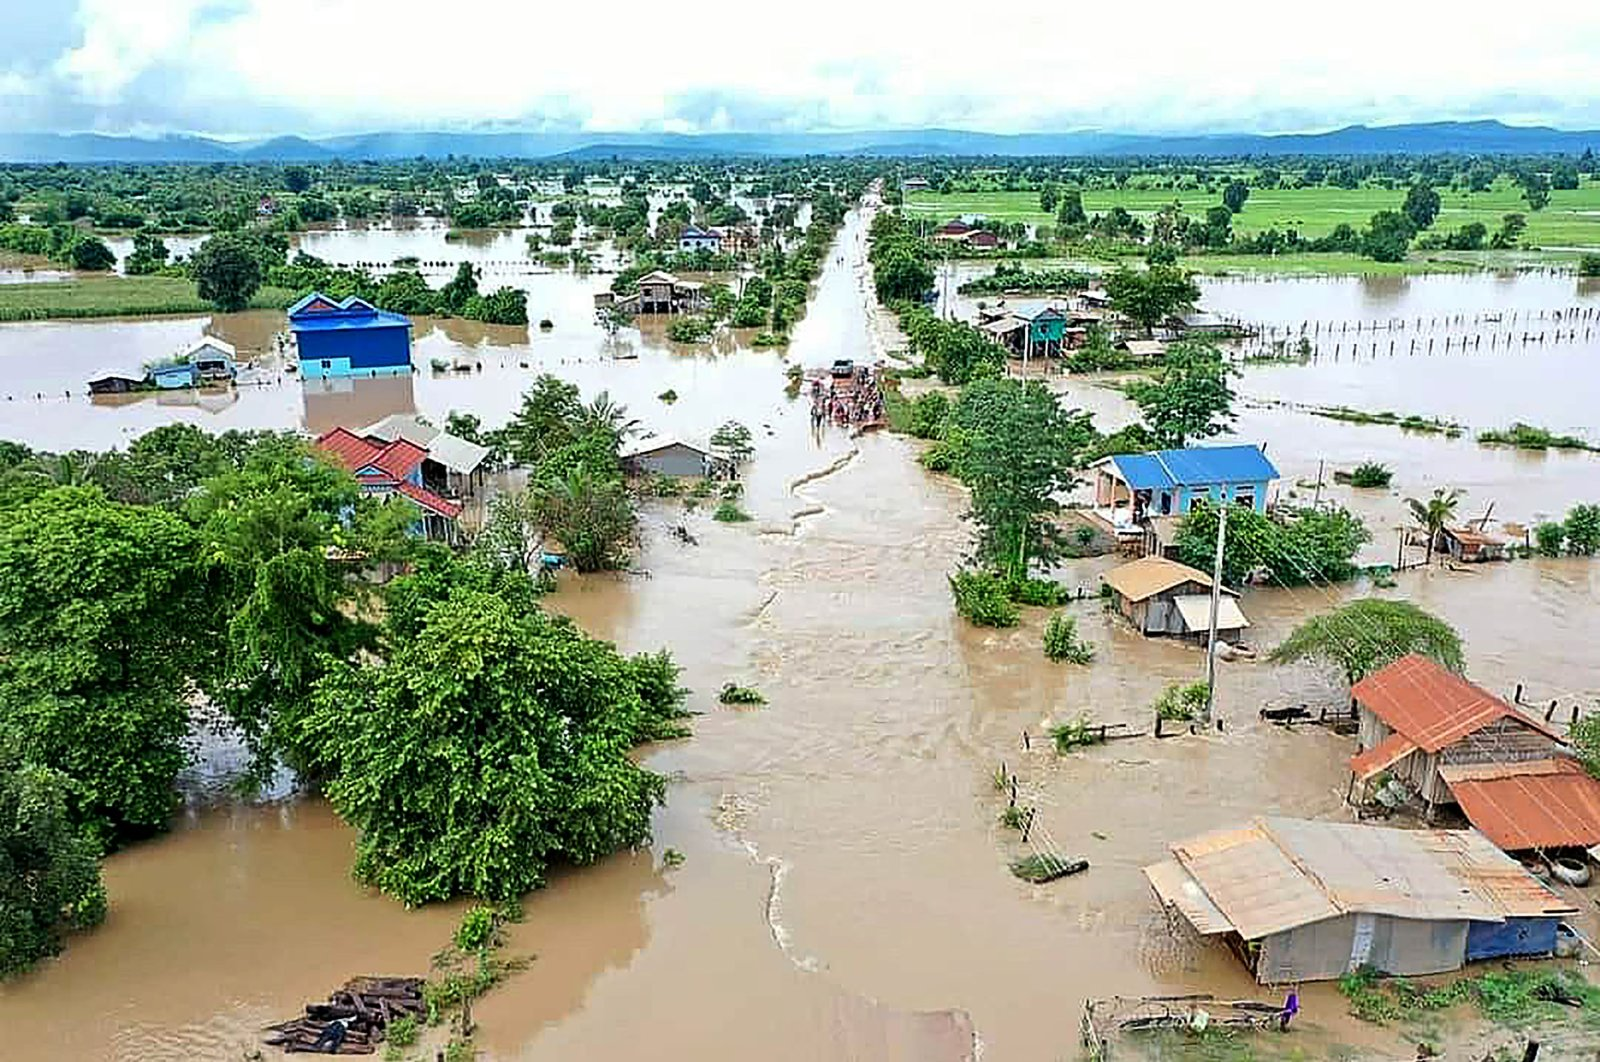 This aerial photo shows a flooded village in Cambodia's western Battambang province, following heavy rains in the region, Oct. 10, 2020. (AFP Photo)